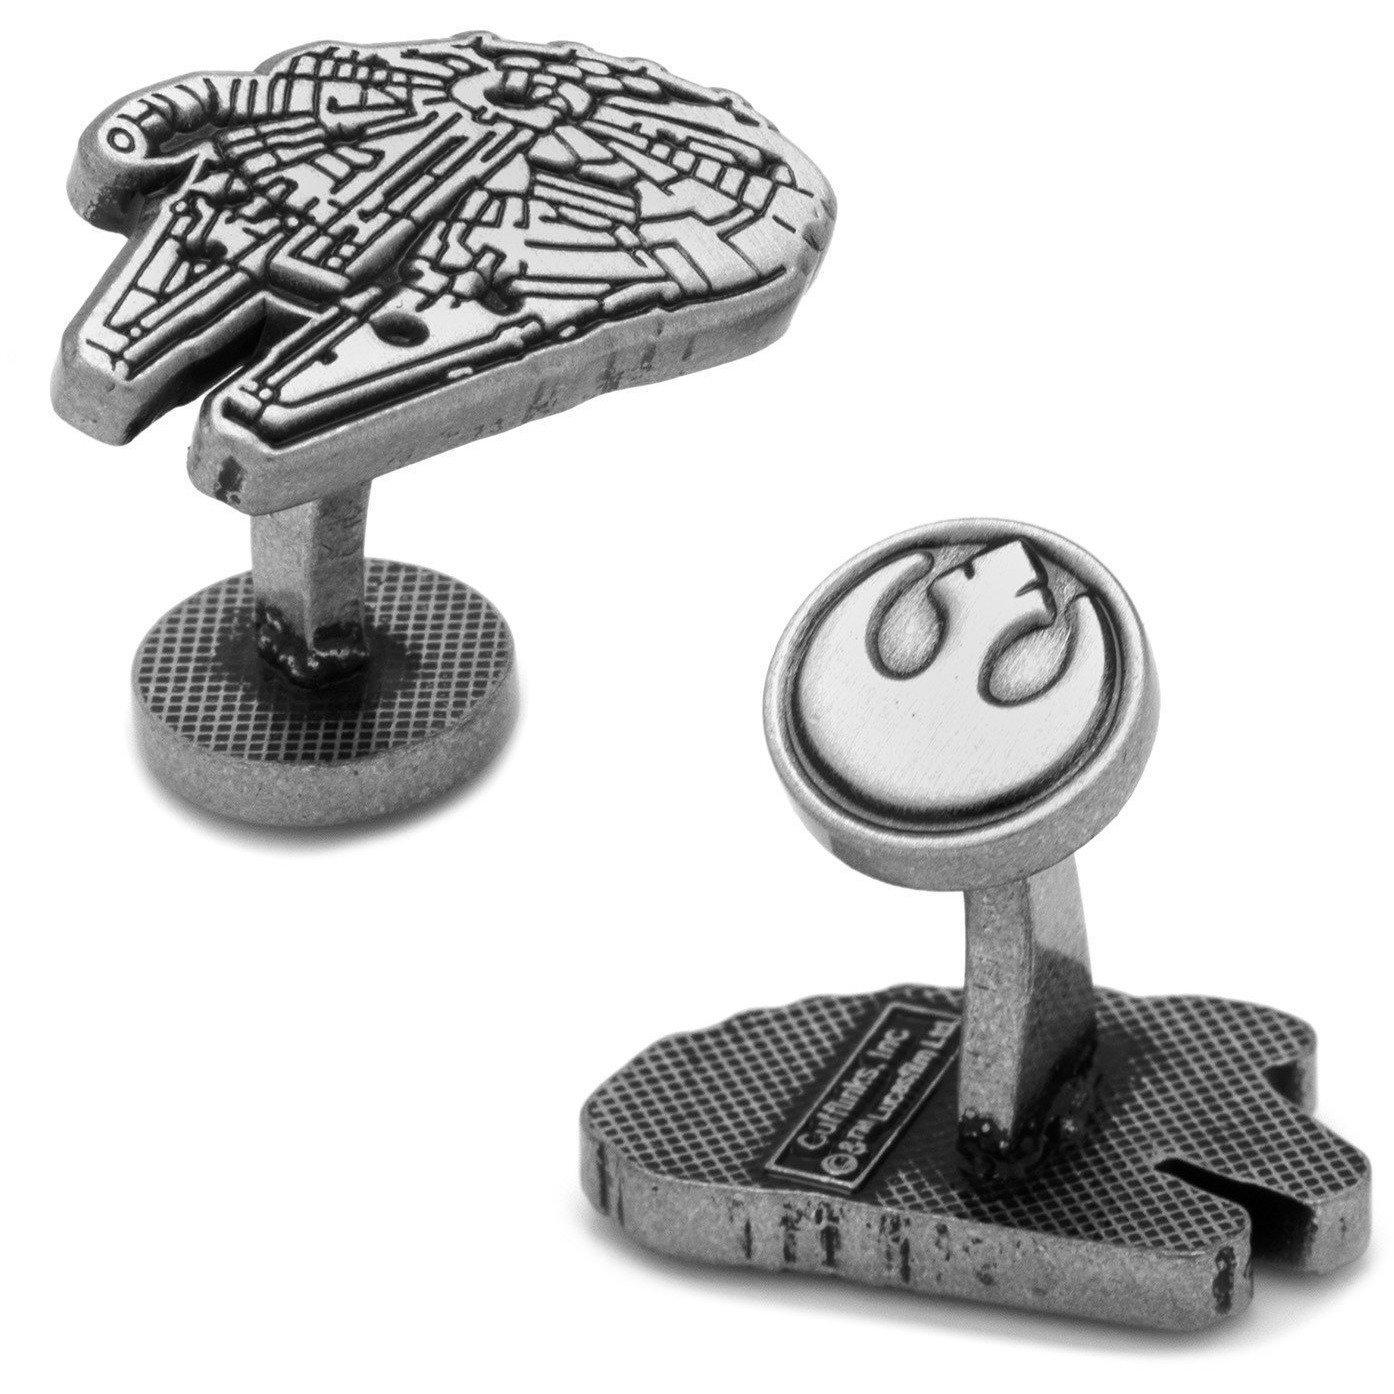 Star Wars Millennium Falcon Silver Cufflinks, Novelty Cufflinks, Cuffed.com.au, CL5897, $69.00